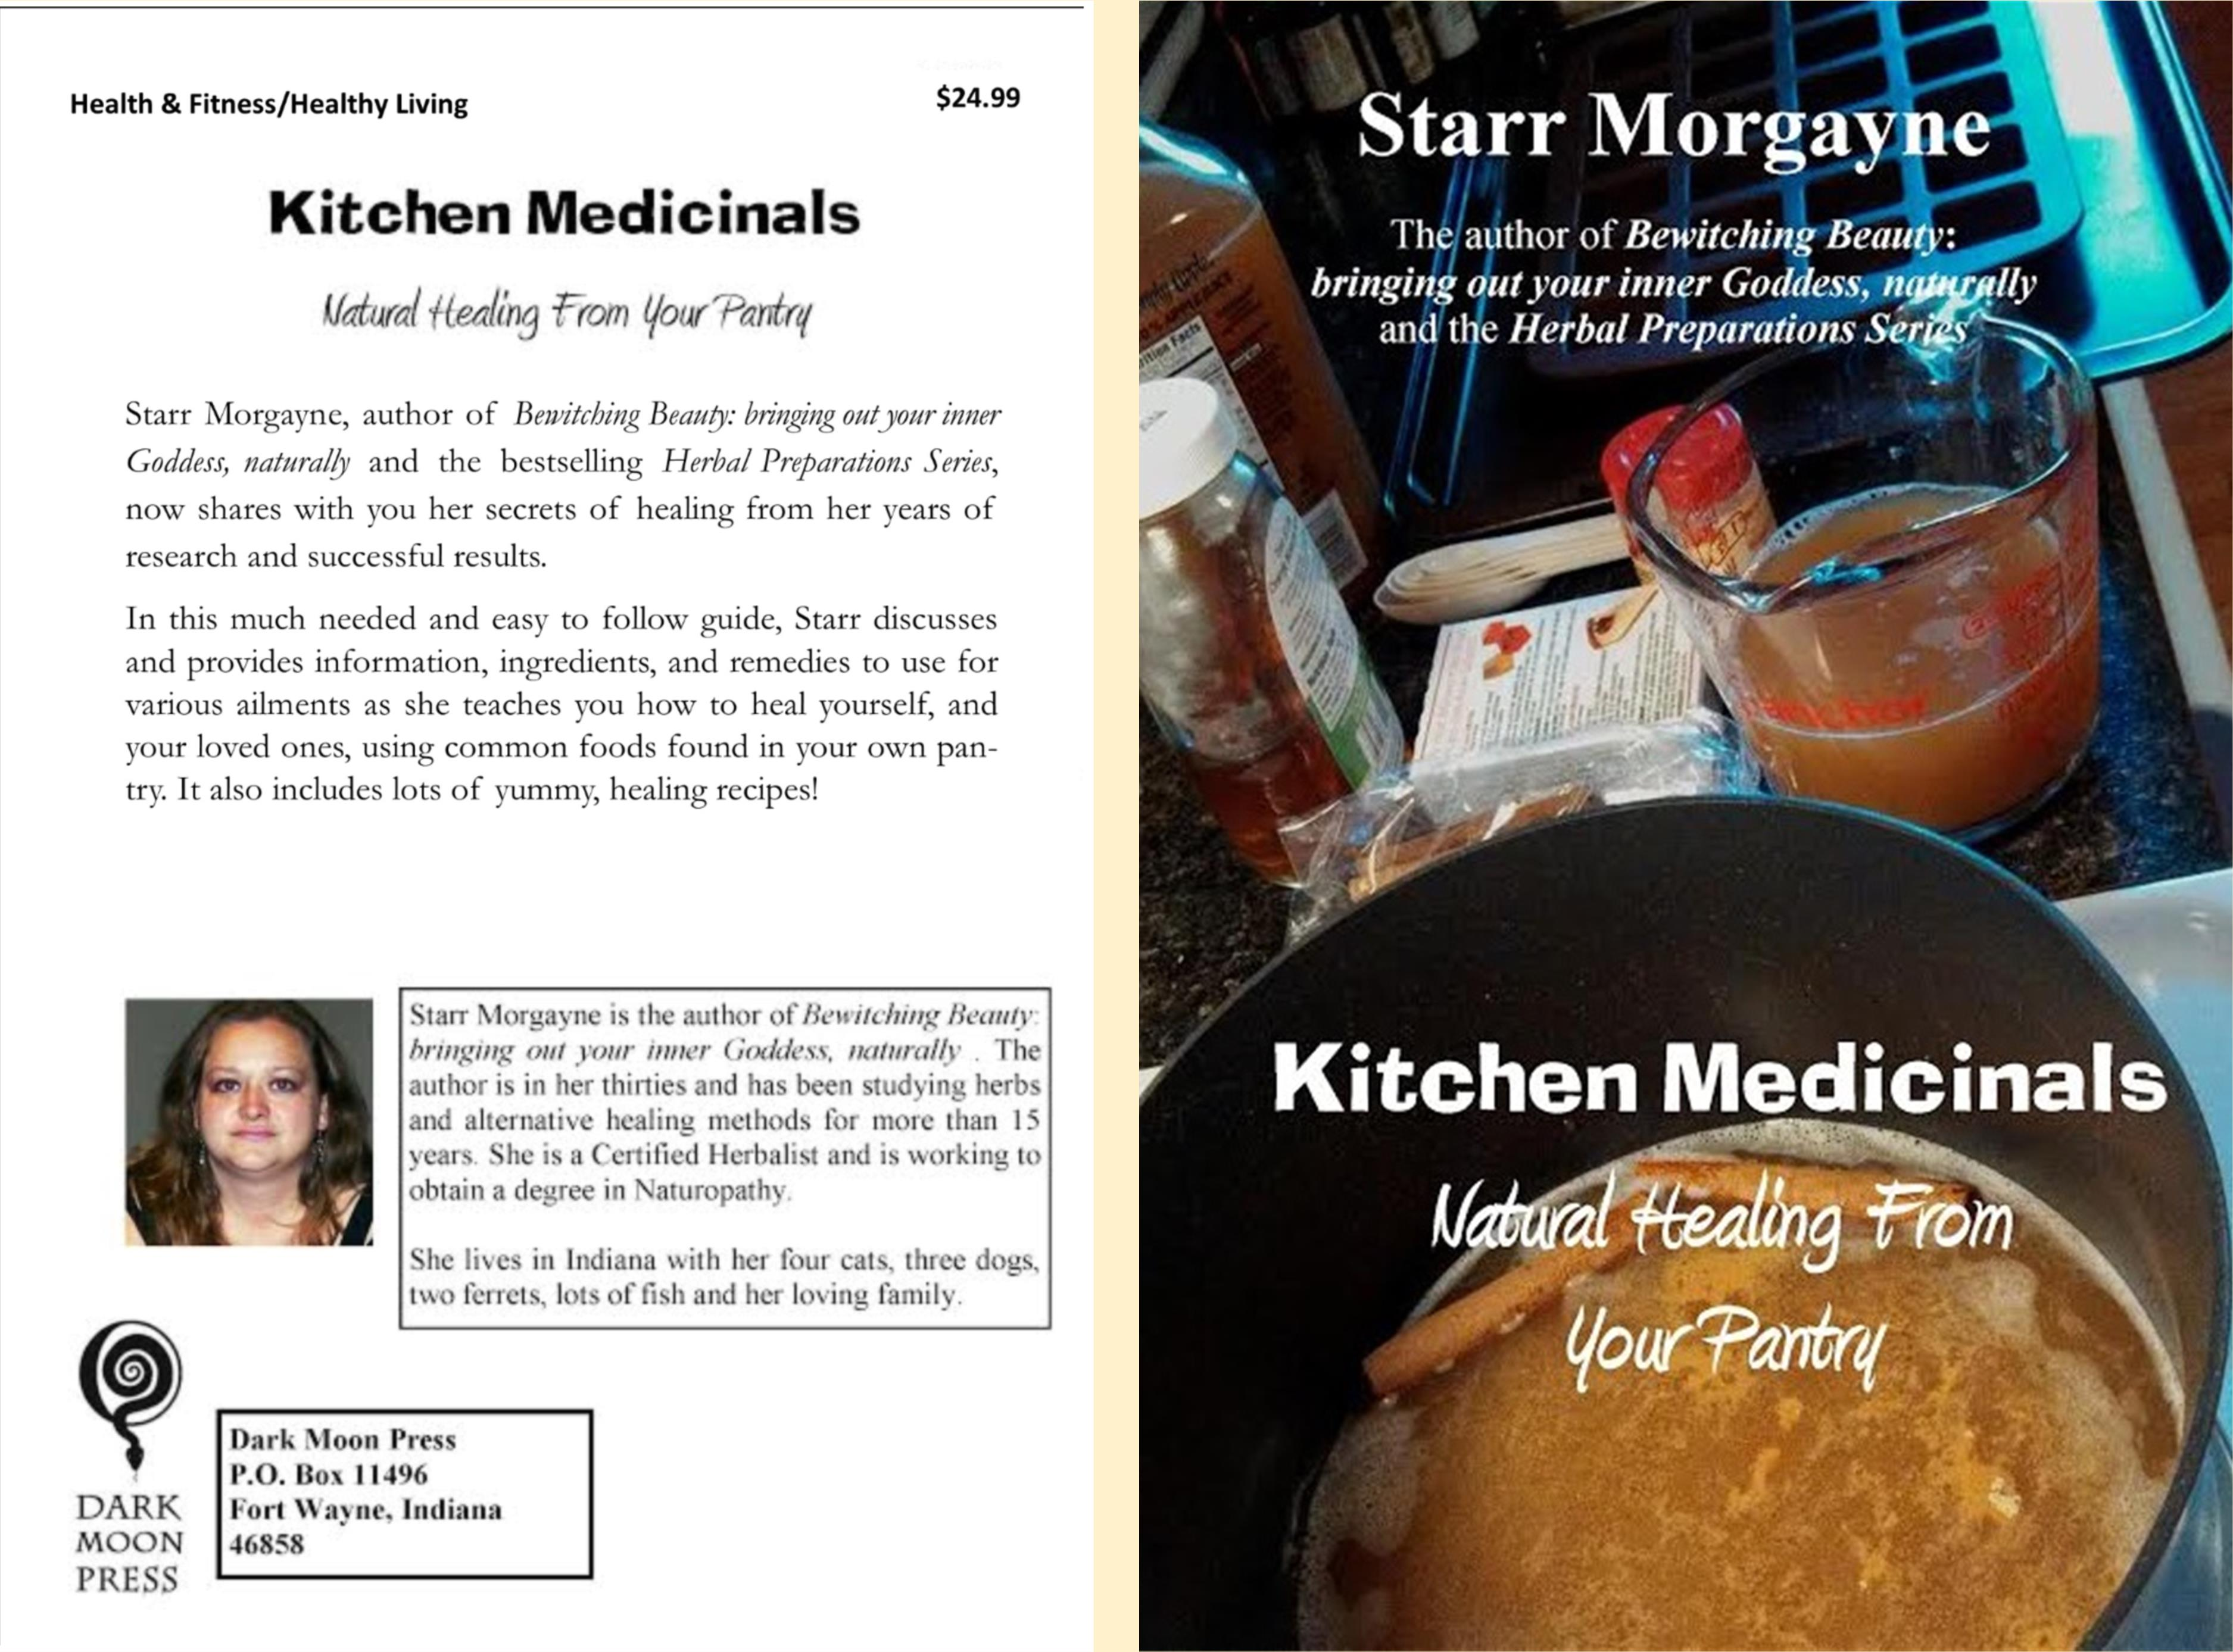 Kitchen Medicinals: Natural Healing from Your Pantry cover image